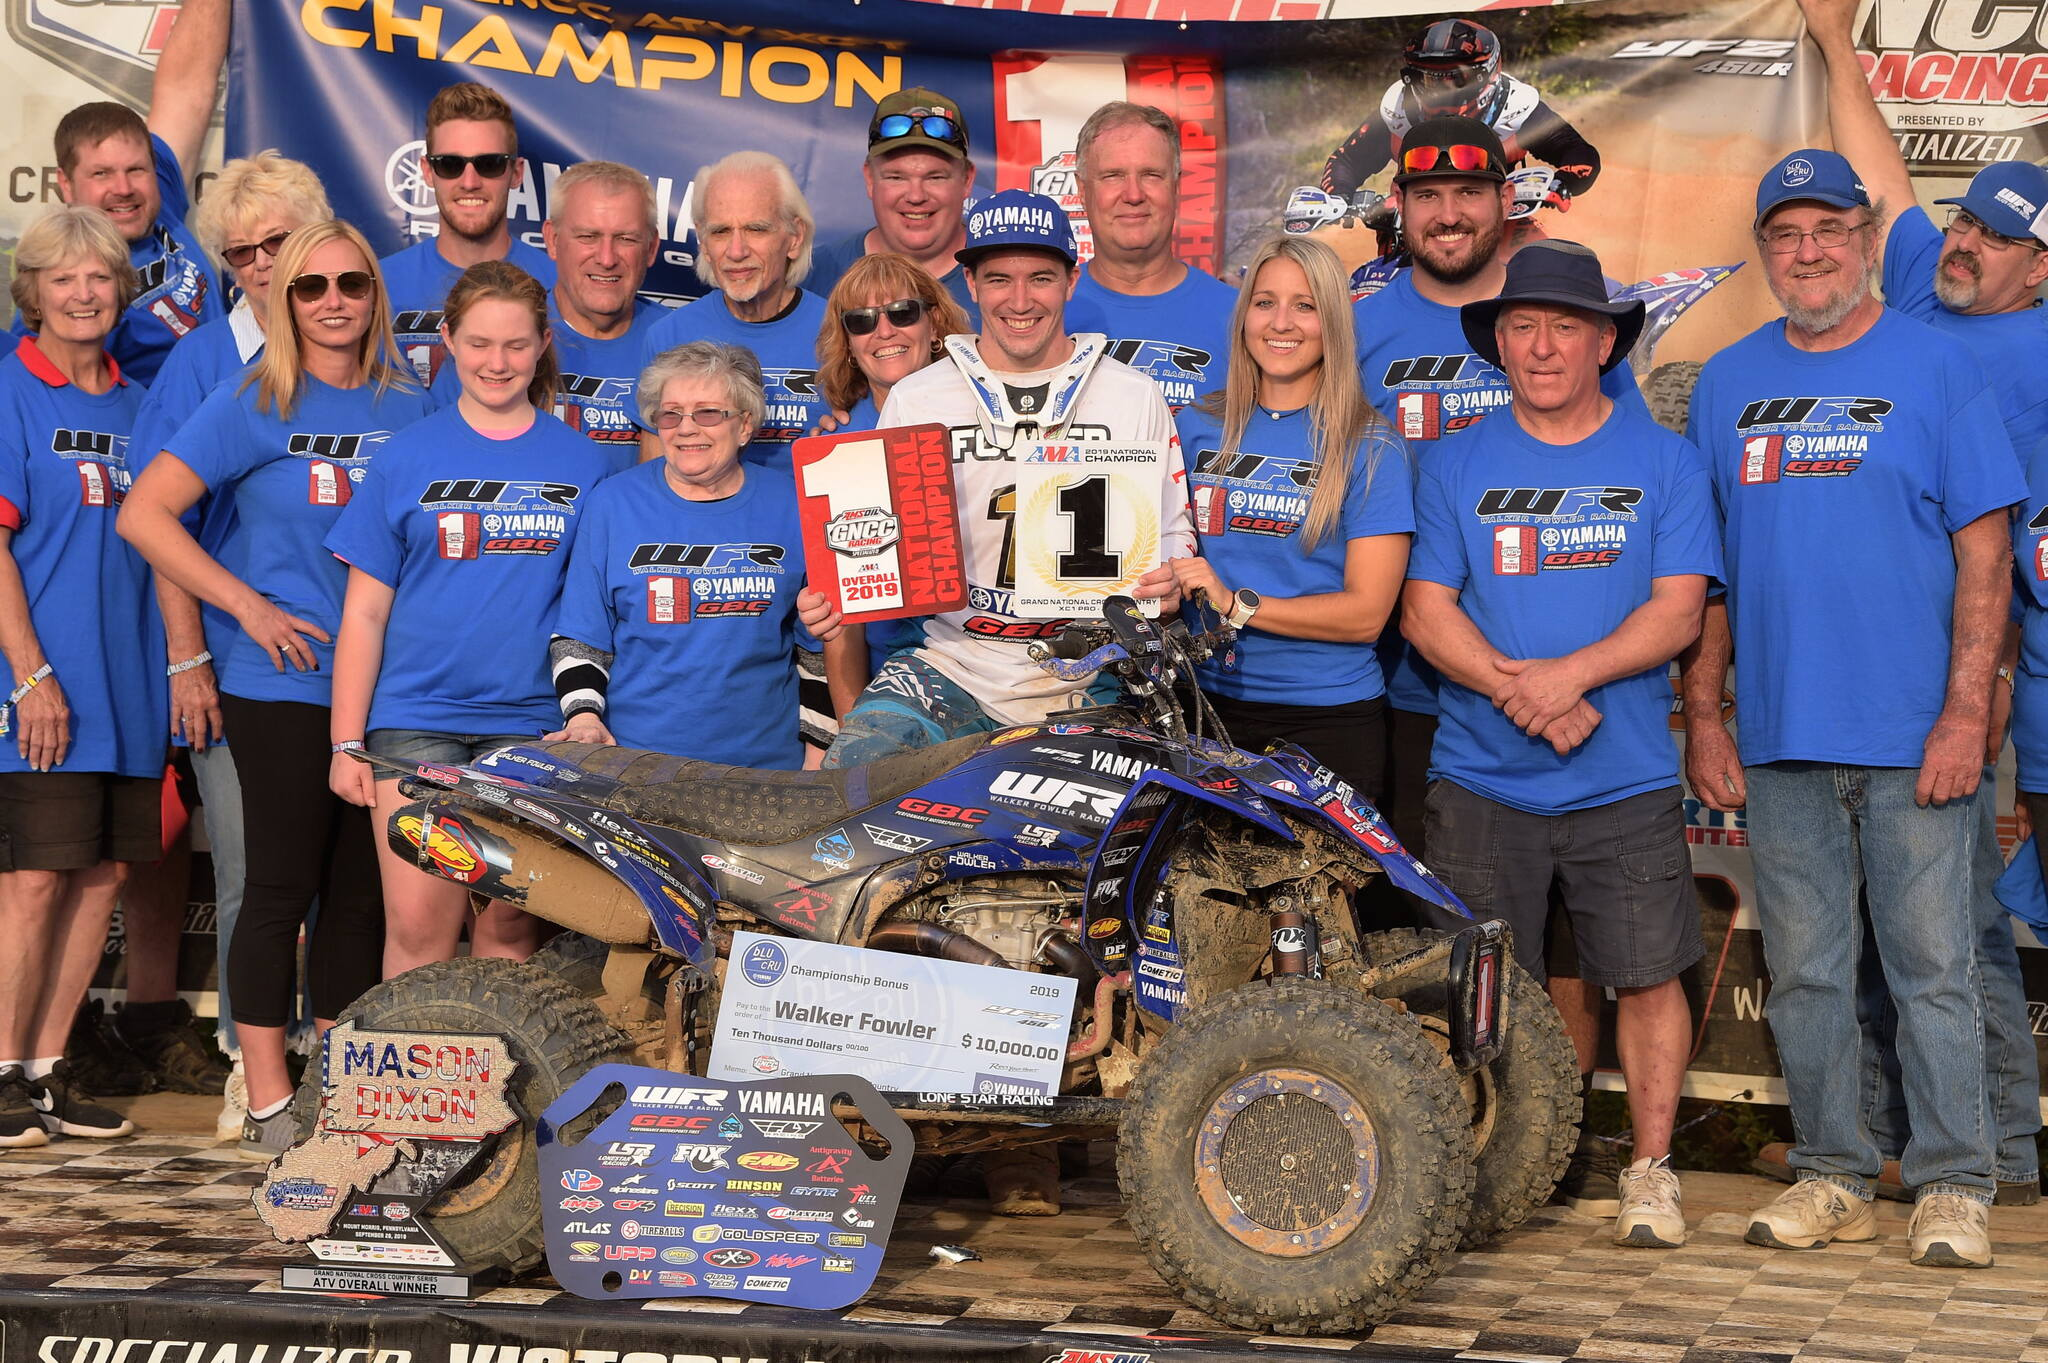 Reigning GNCC XC1 Pro ATV champion, Walker Fowler earned his fifth-straight title and the $10,000 bLU cRU championship bonus in his WFR / GBC / Fly Racing-backed Yamaha YFZ450R, earning a 79-point lead with nine first place finishes